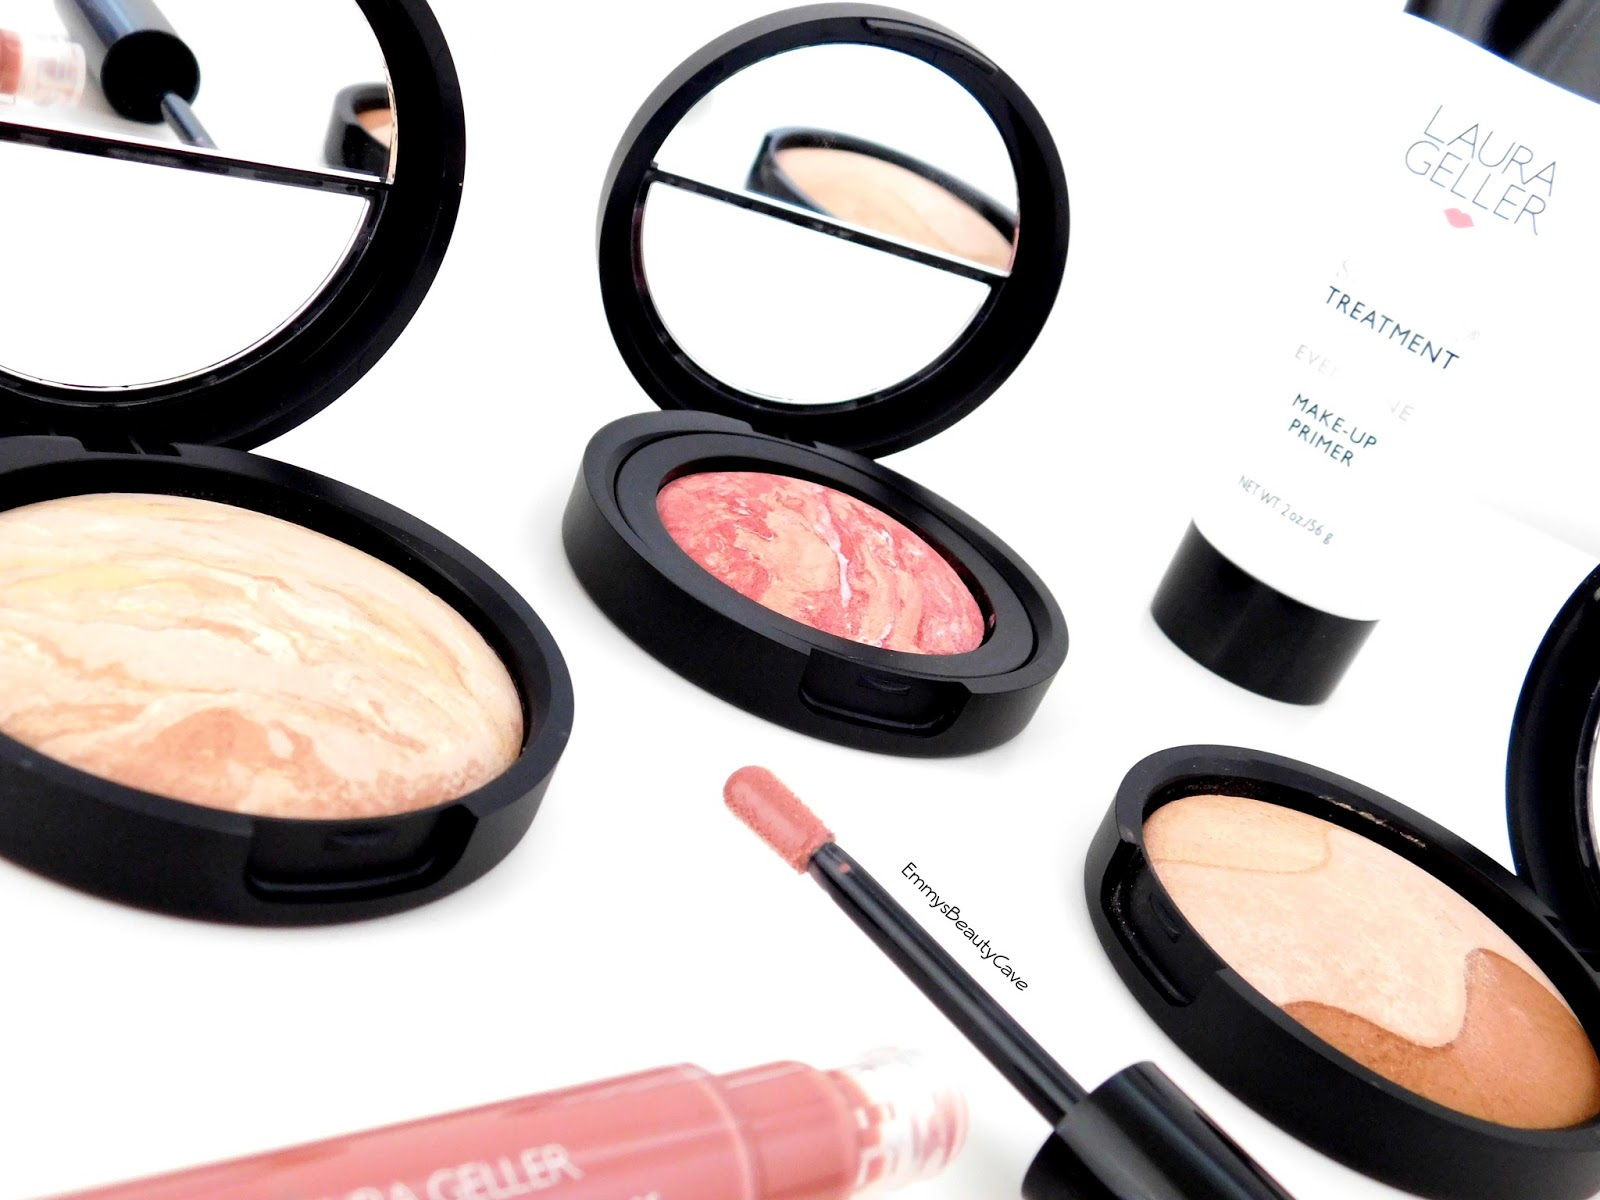 Laura Geller Makeup Reviews And Swatches Llaura Baked N Balance Foundation Brighten Blush